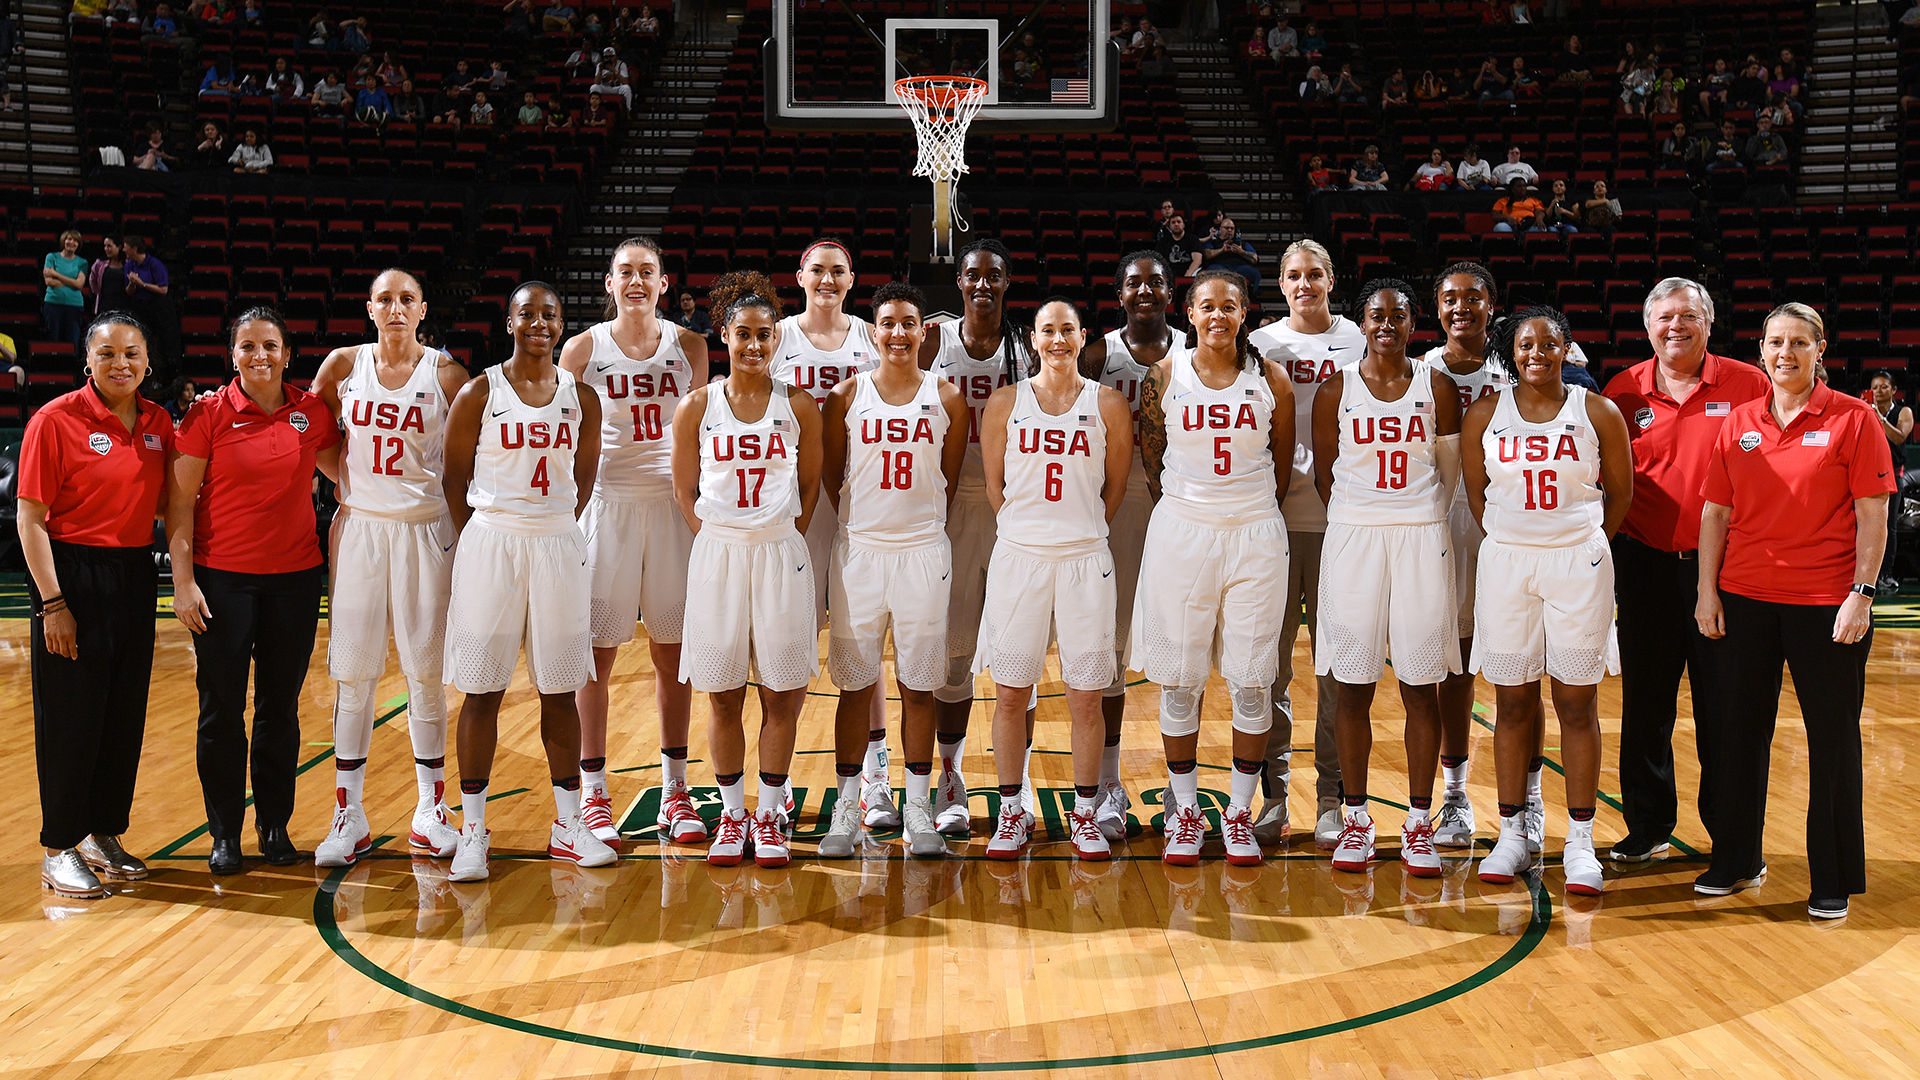 2018 USA Basketball Women's National Team